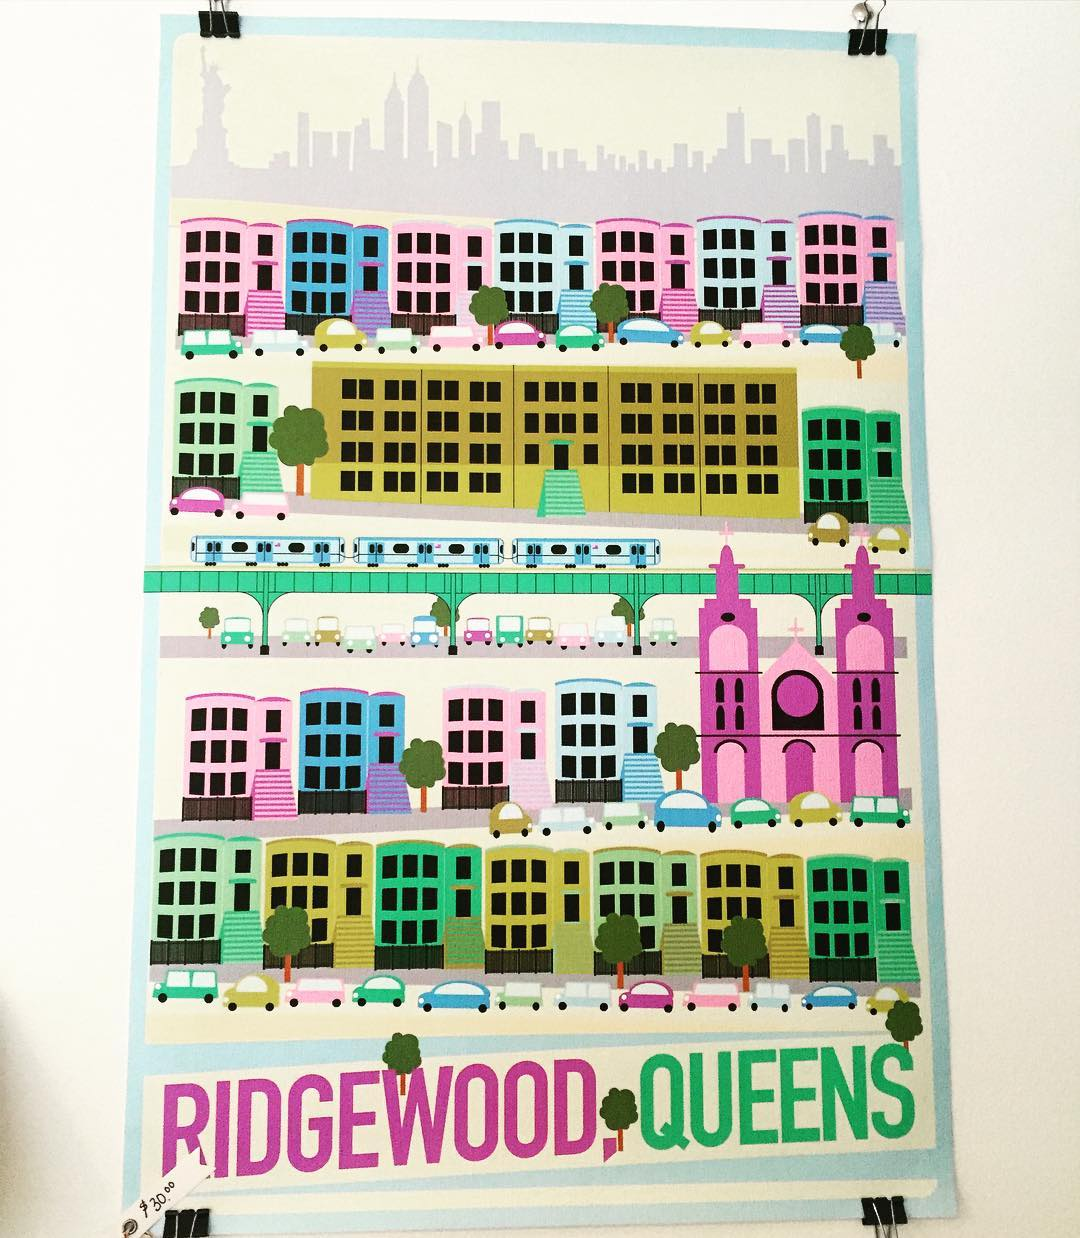 Finally stopped into the cutesttt lifestyle/home goods boutique in Ridgewood – Saint Seneca on Cypress Ave – and saw this awesome @ridgewood.queens print.                  #ridgewood #ridgewoodny #ridgewoodqueens #cypressave #myrtleave #saintseneca #queens #queenscapes #itsinqueens #heartofqueens @lauumariee @saint.seneca.store  (at Ridgewood, Queens)